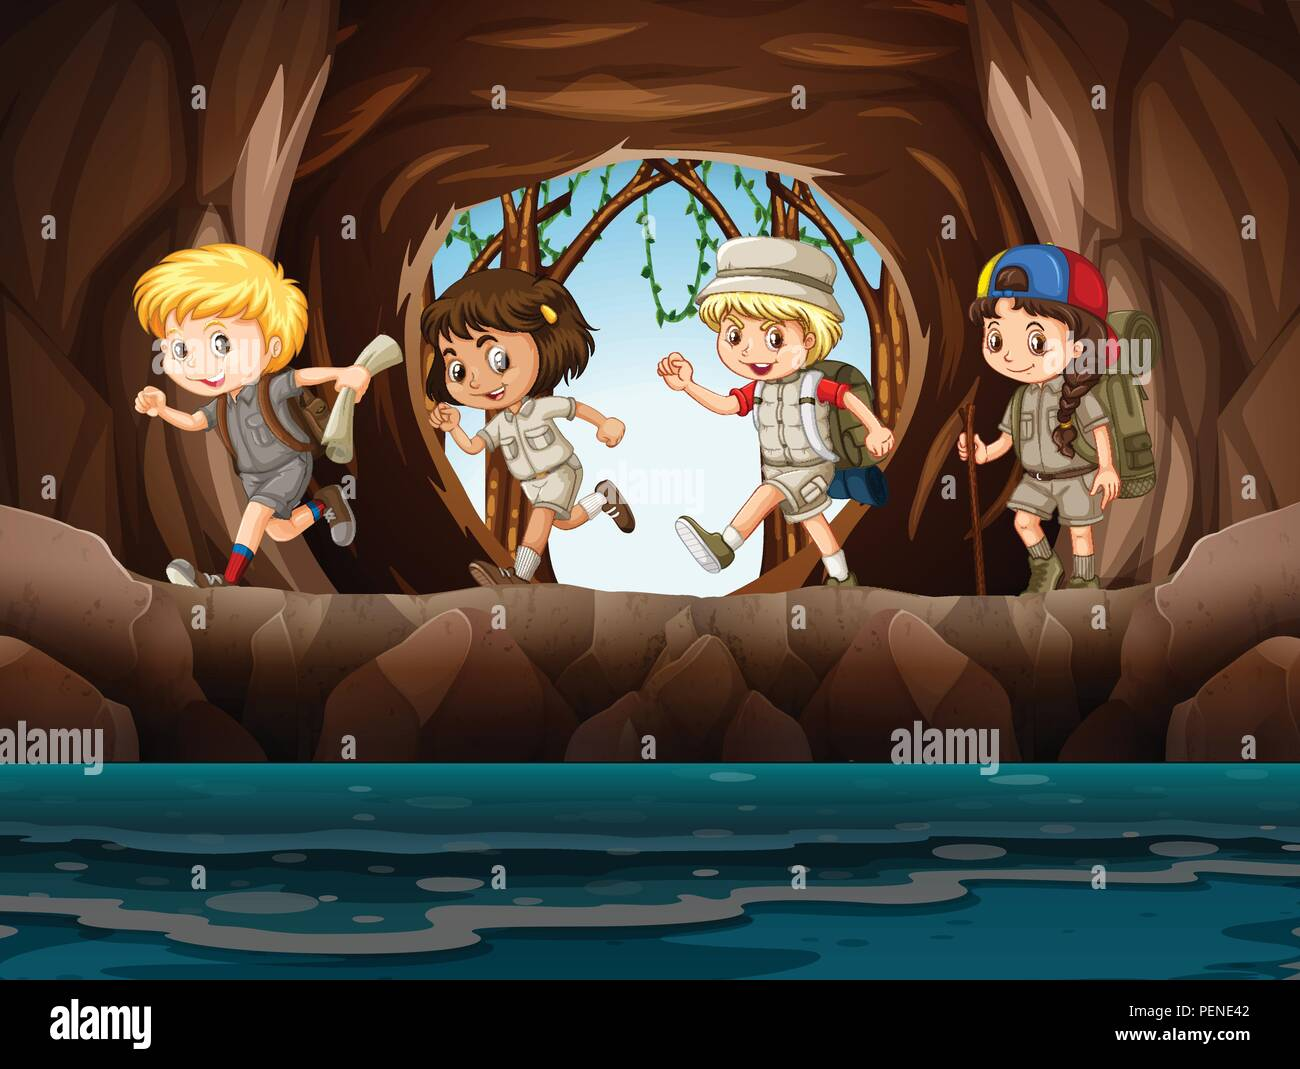 Young child scouts exploring a cave illustration - Stock Vector